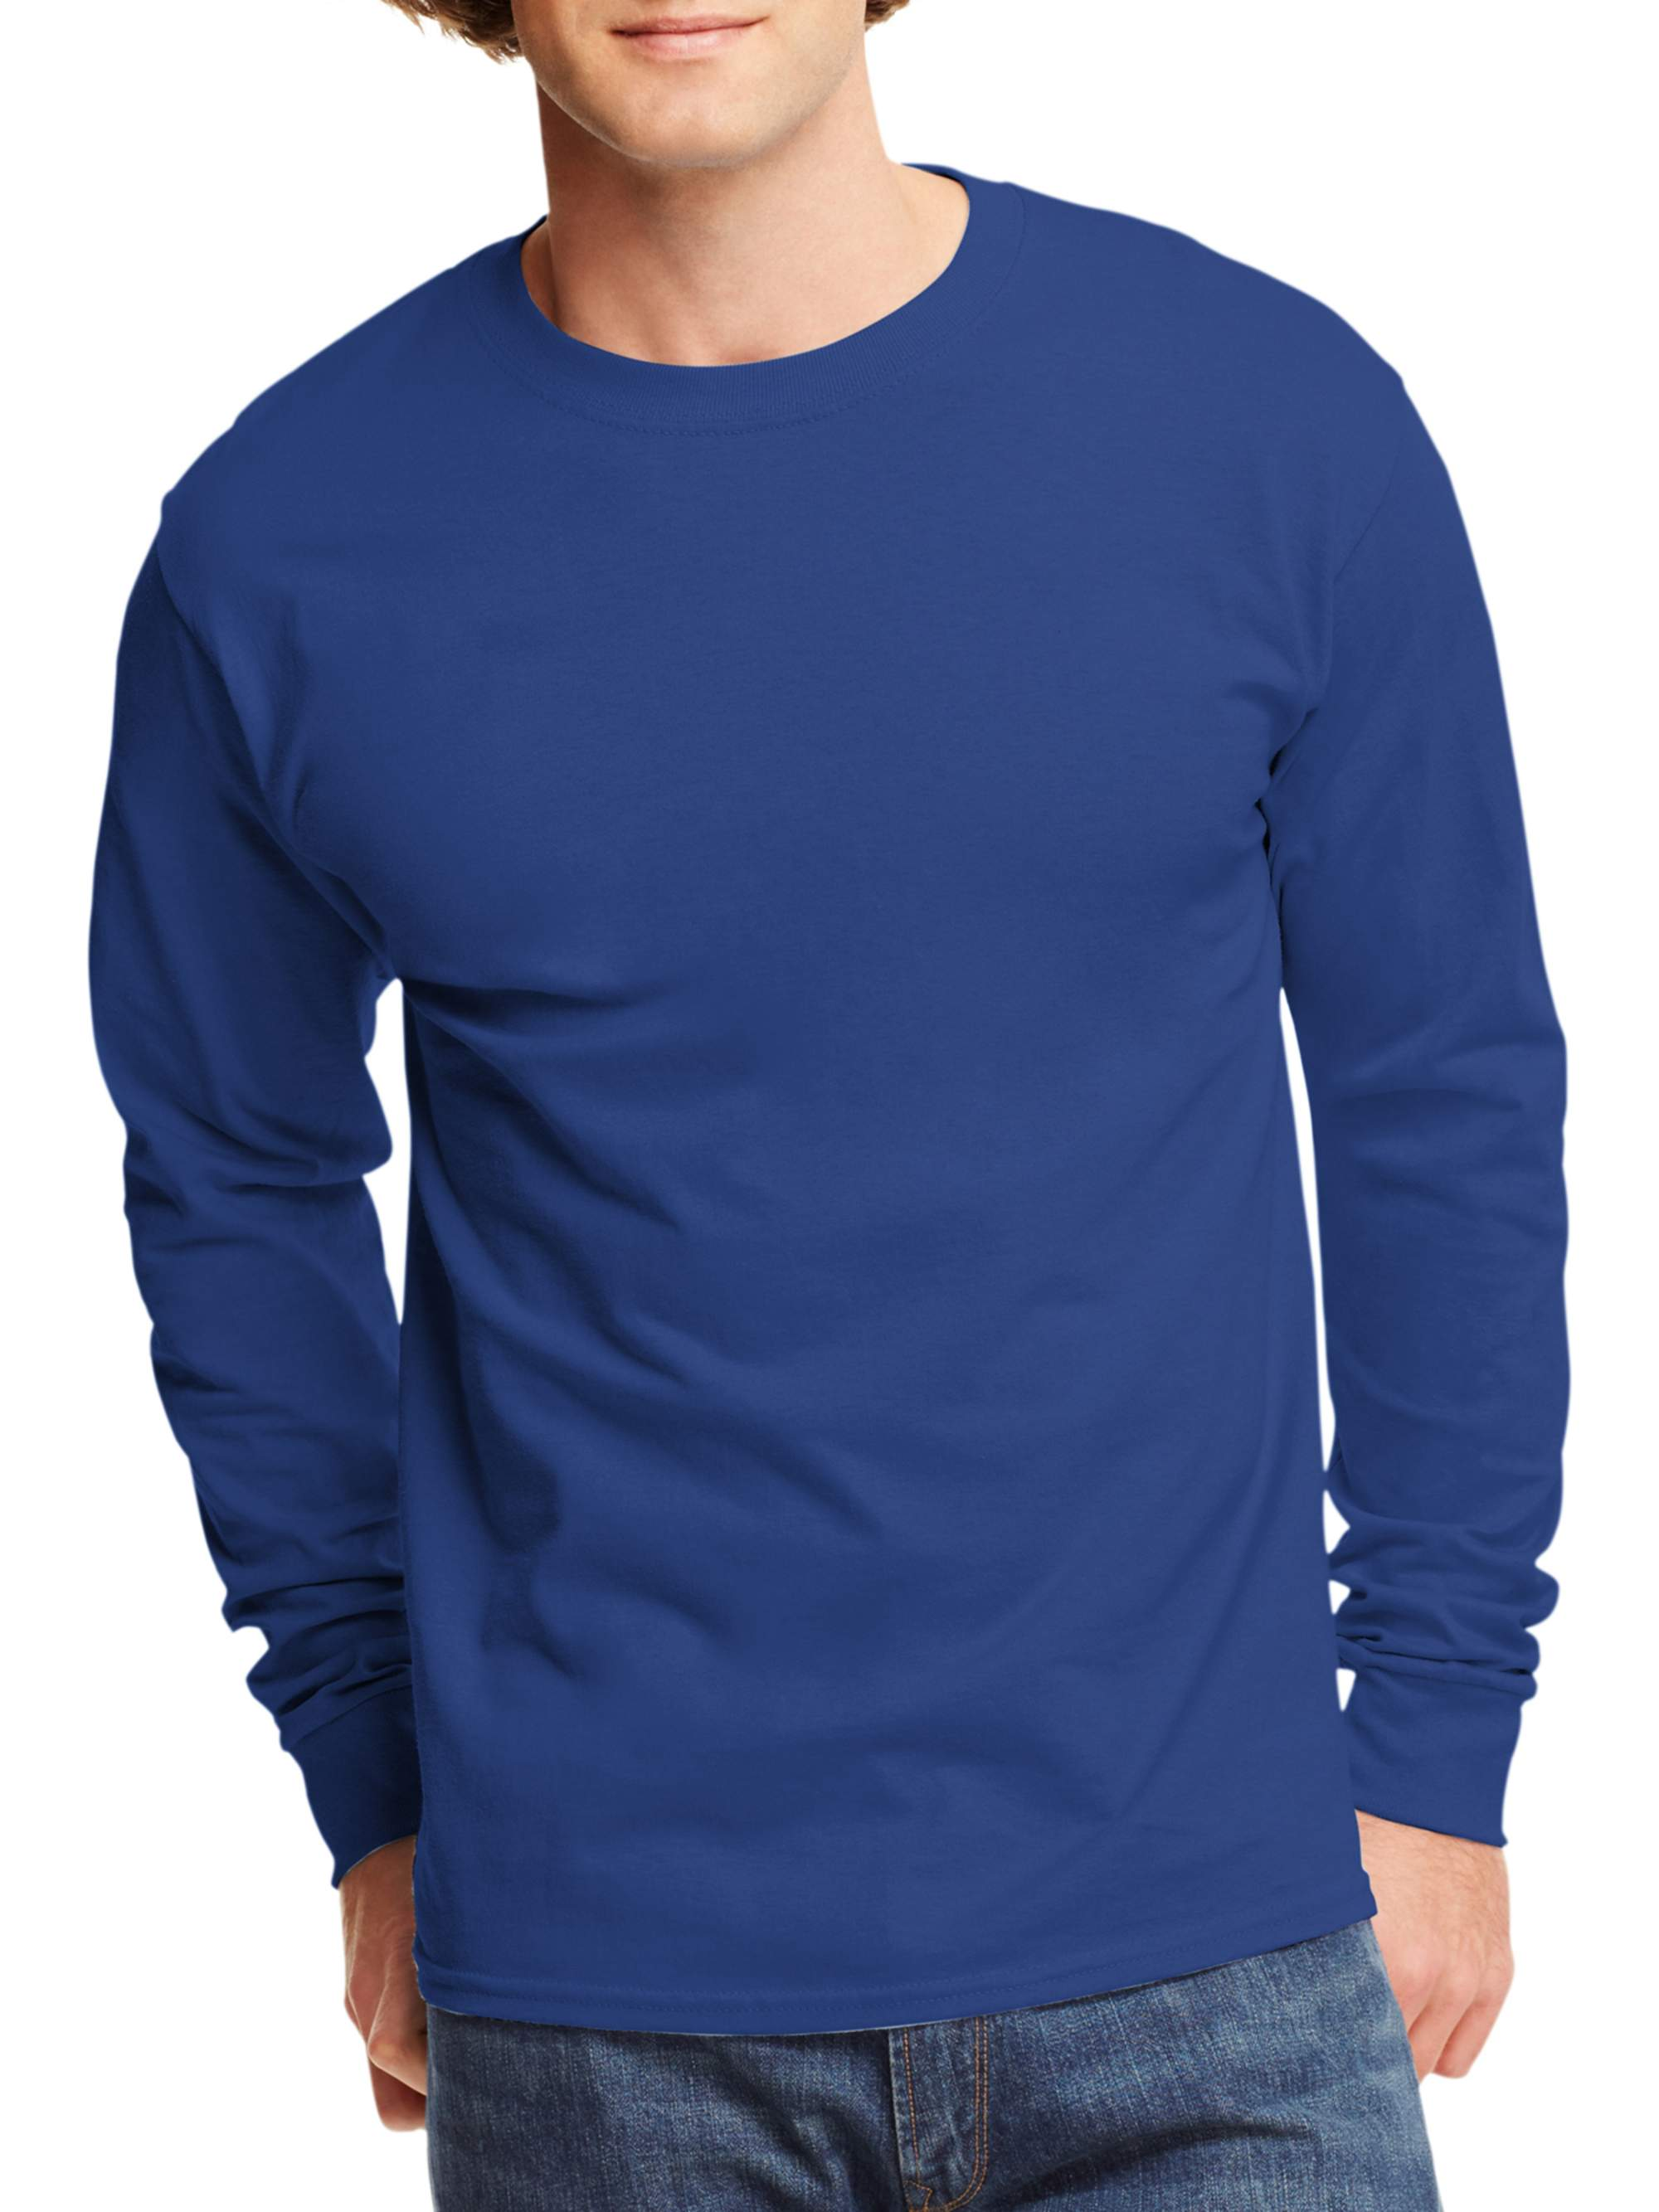 b6dbb4ed2e11e3 Hanes - Mens Tagless Cotton Crew Neck Long-Sleeve Tshirt - Walmart.com